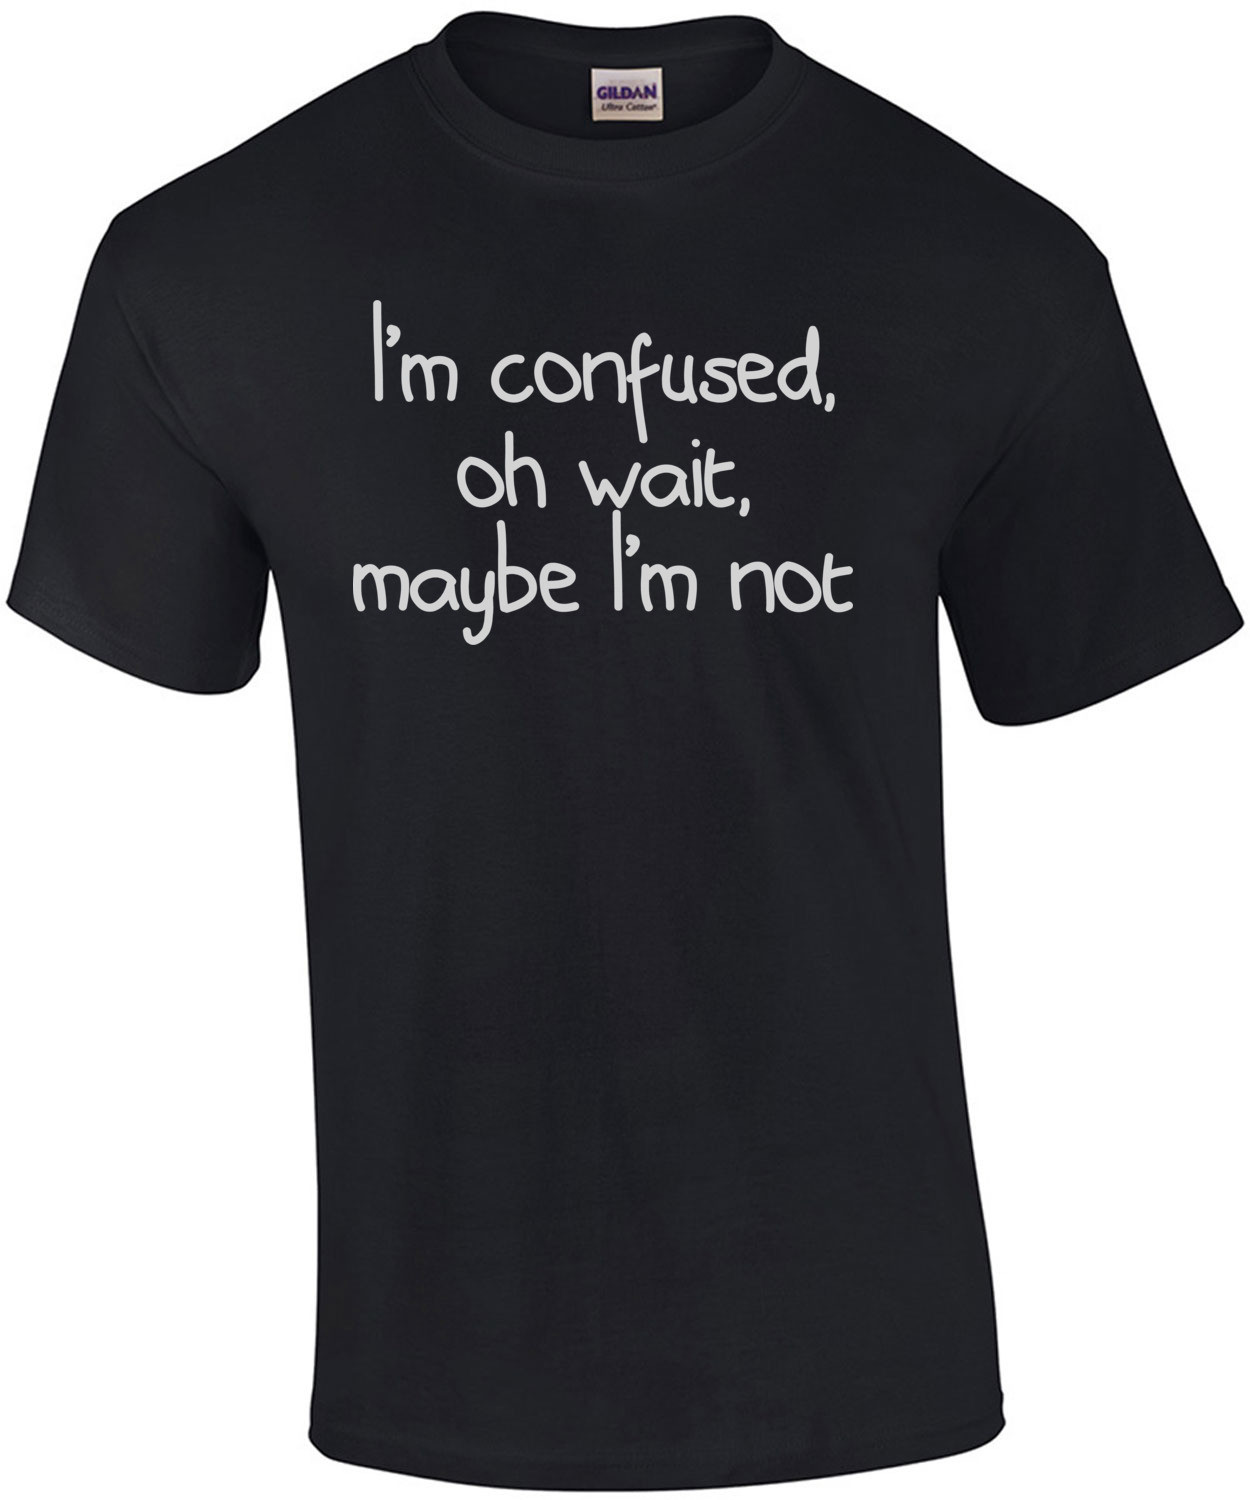 I'm Confused, Oh Wait, Maybe I'm Not Shirt